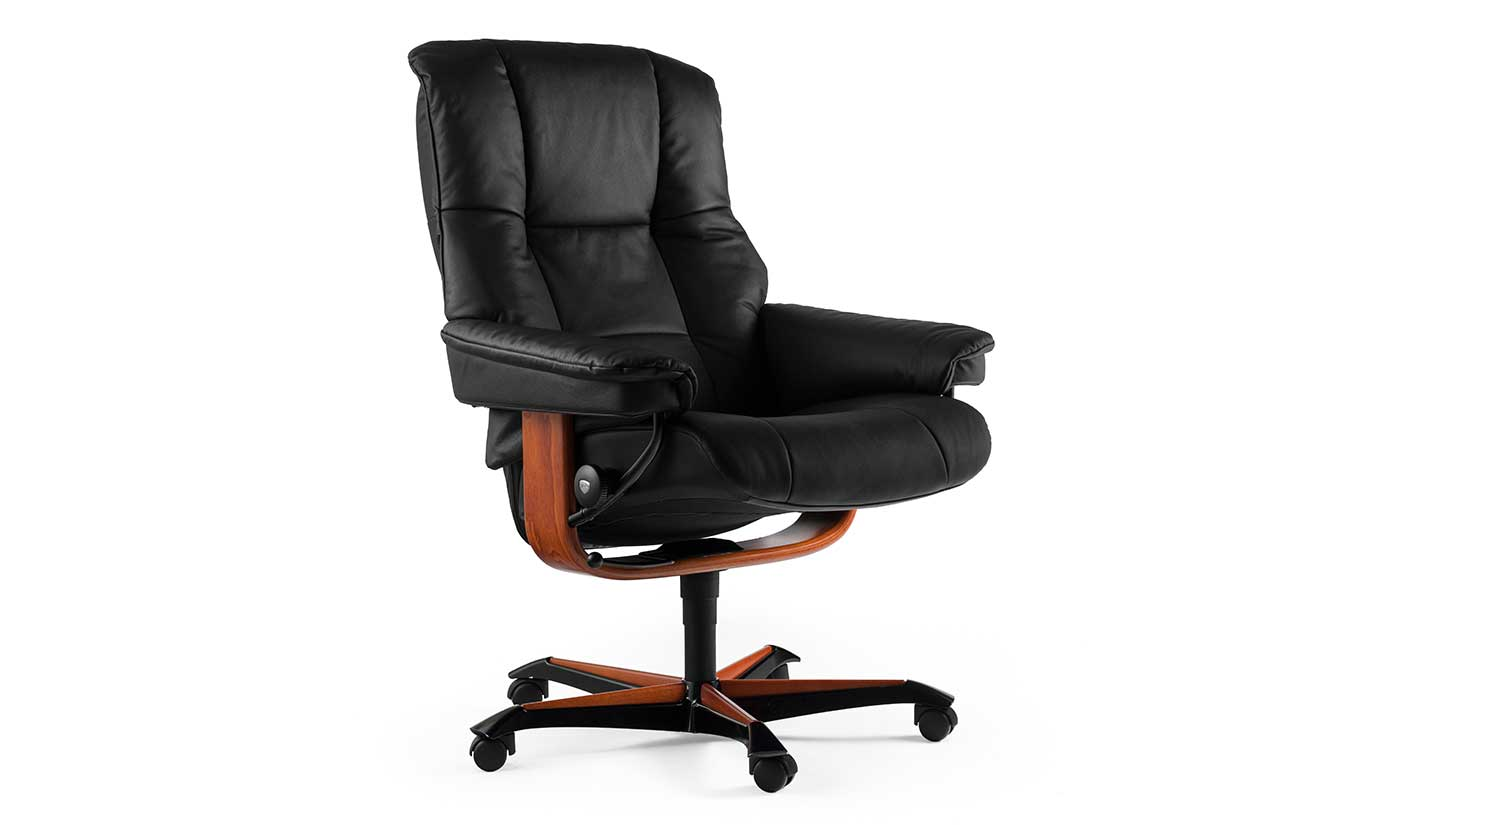 Stressless Office Chair Circle Furniture Stressless Mayfair Office Chair